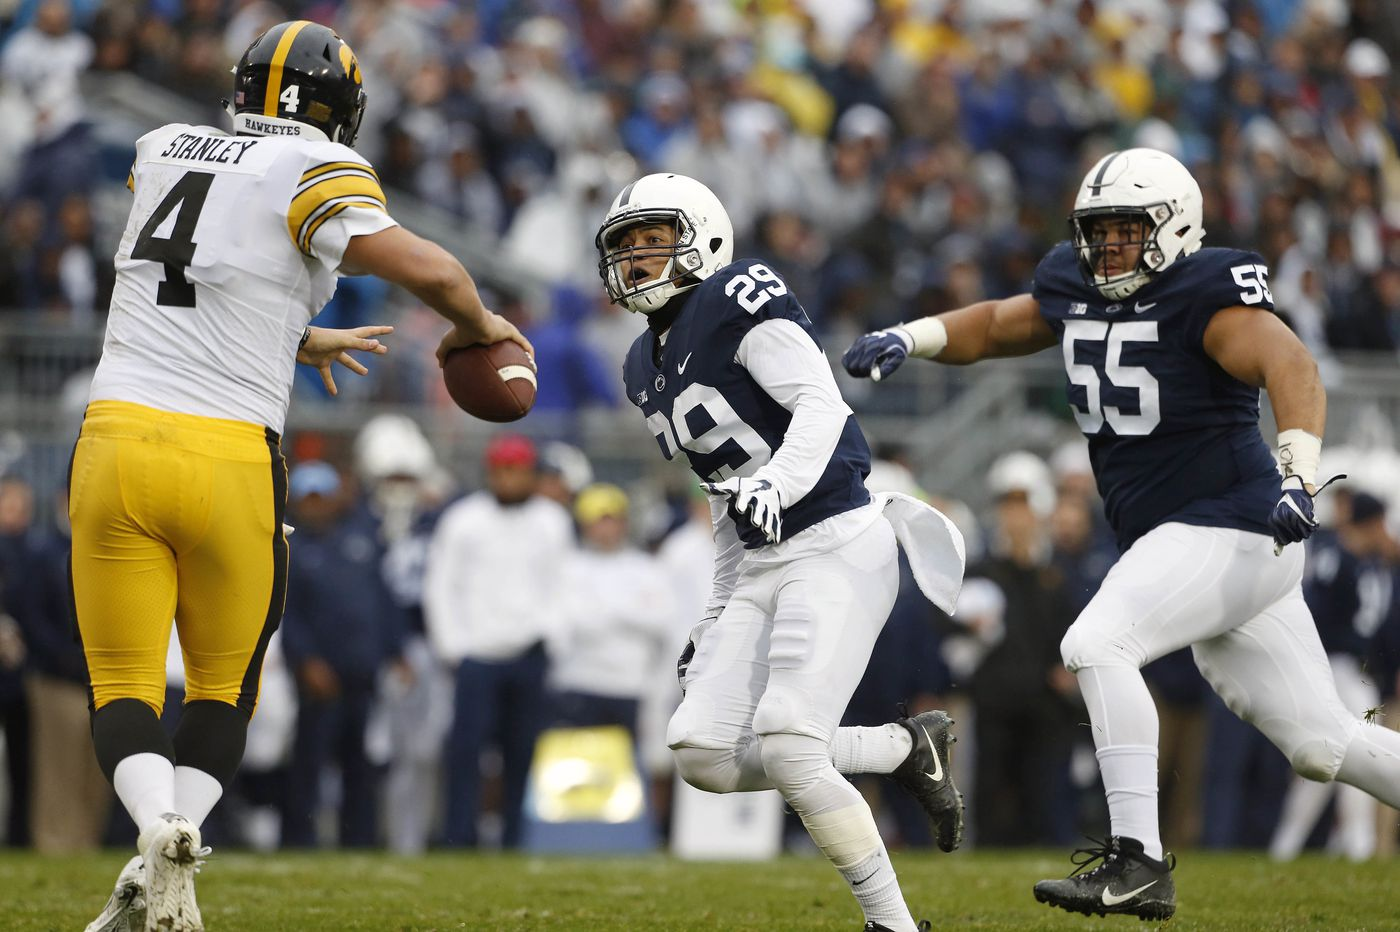 Penn State hangs on to beat Iowa behind injured Trace McSorley s return in  second half 5867d6eab